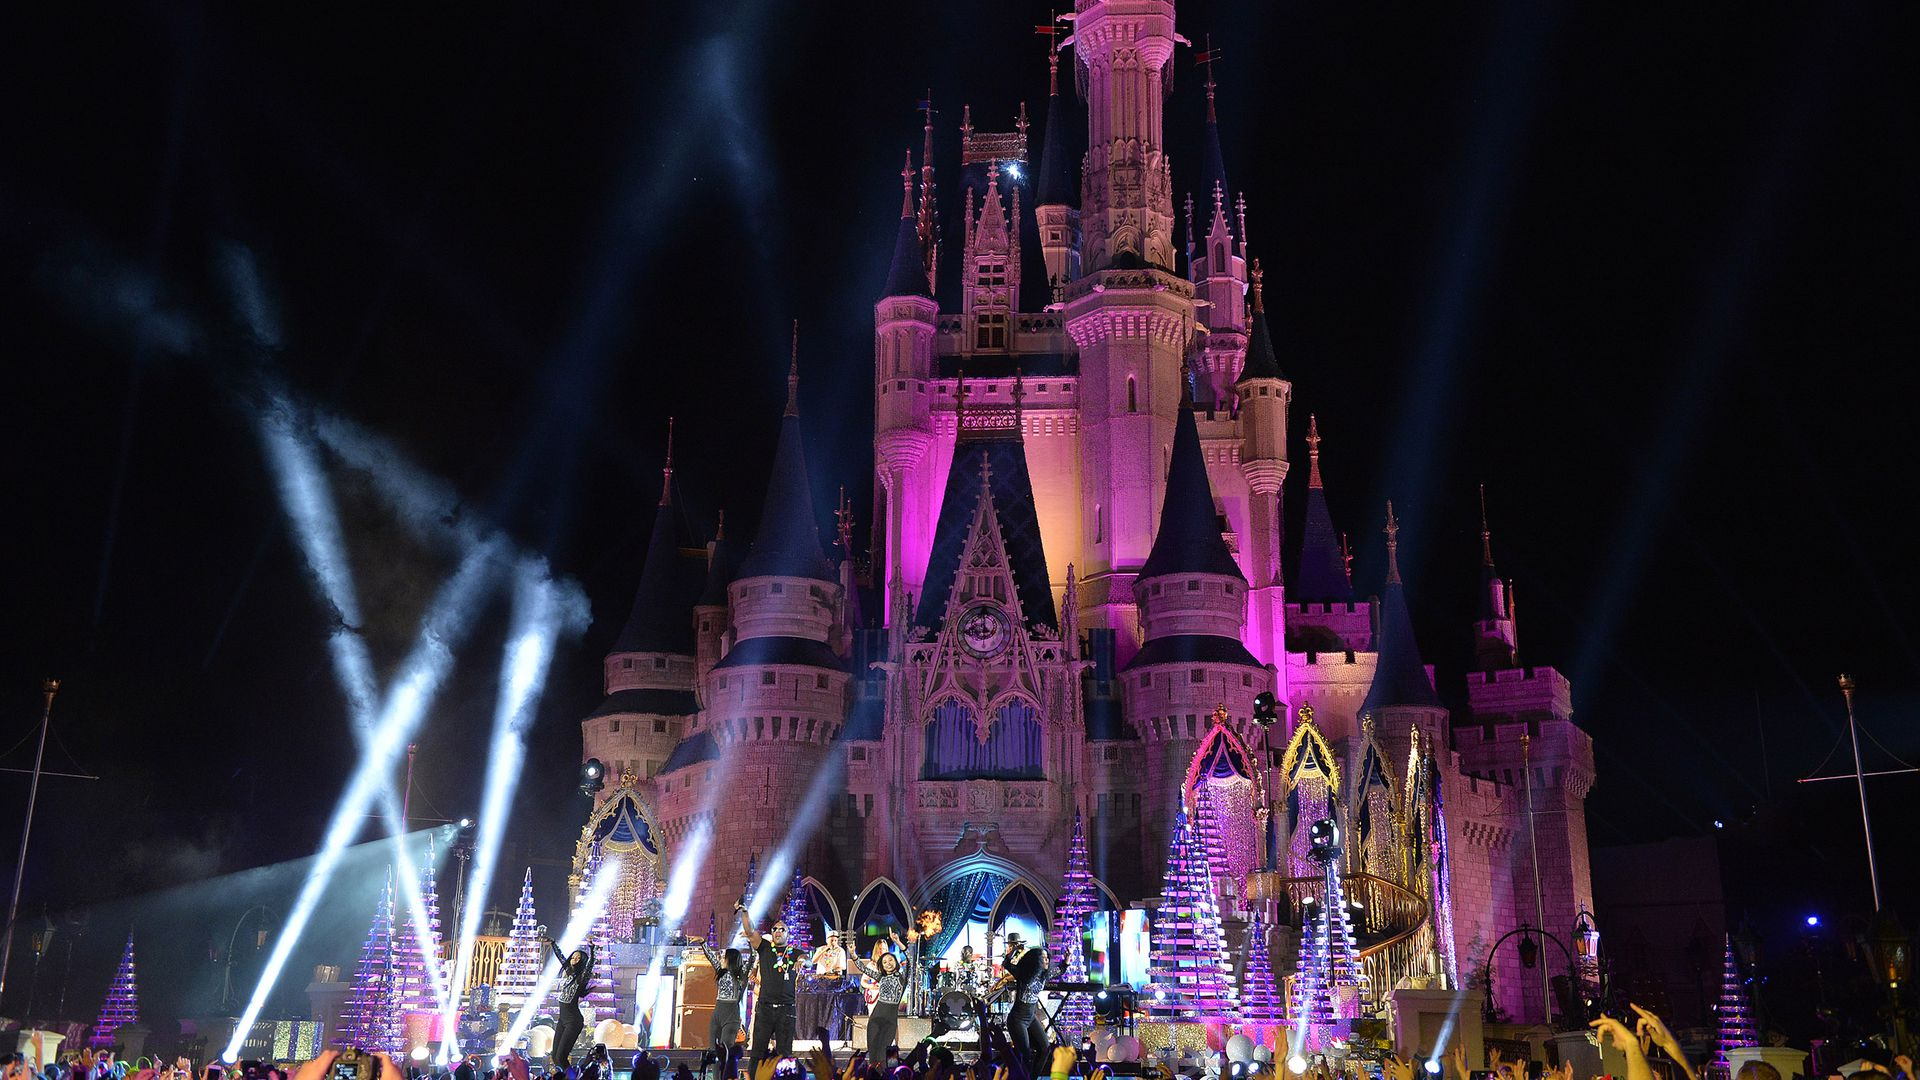 A view of the castle in Disney World at night